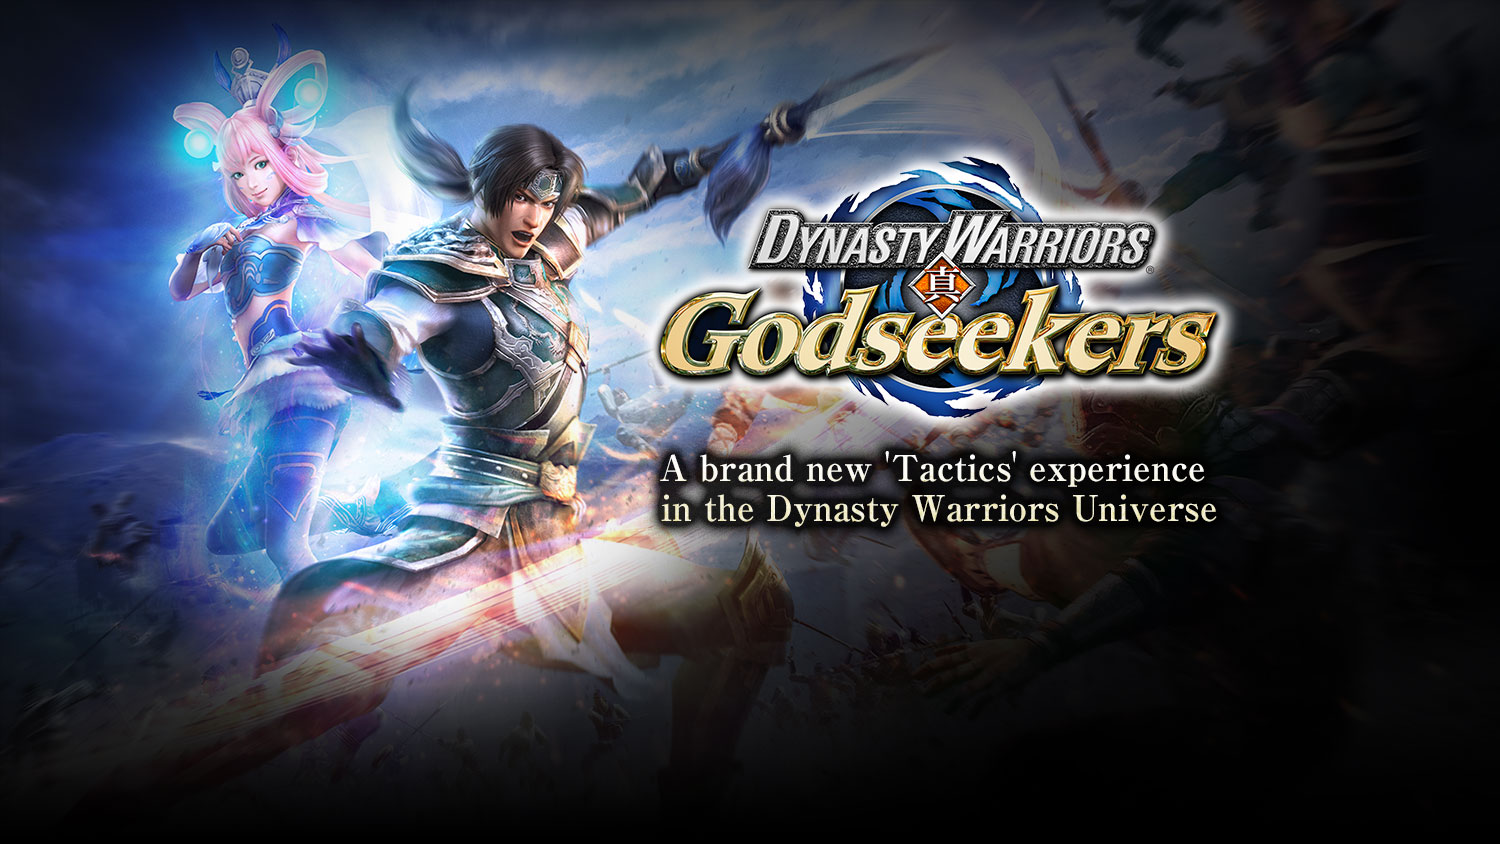 Strategy Games Preview 08 - Dynasty Warriors Godseekers